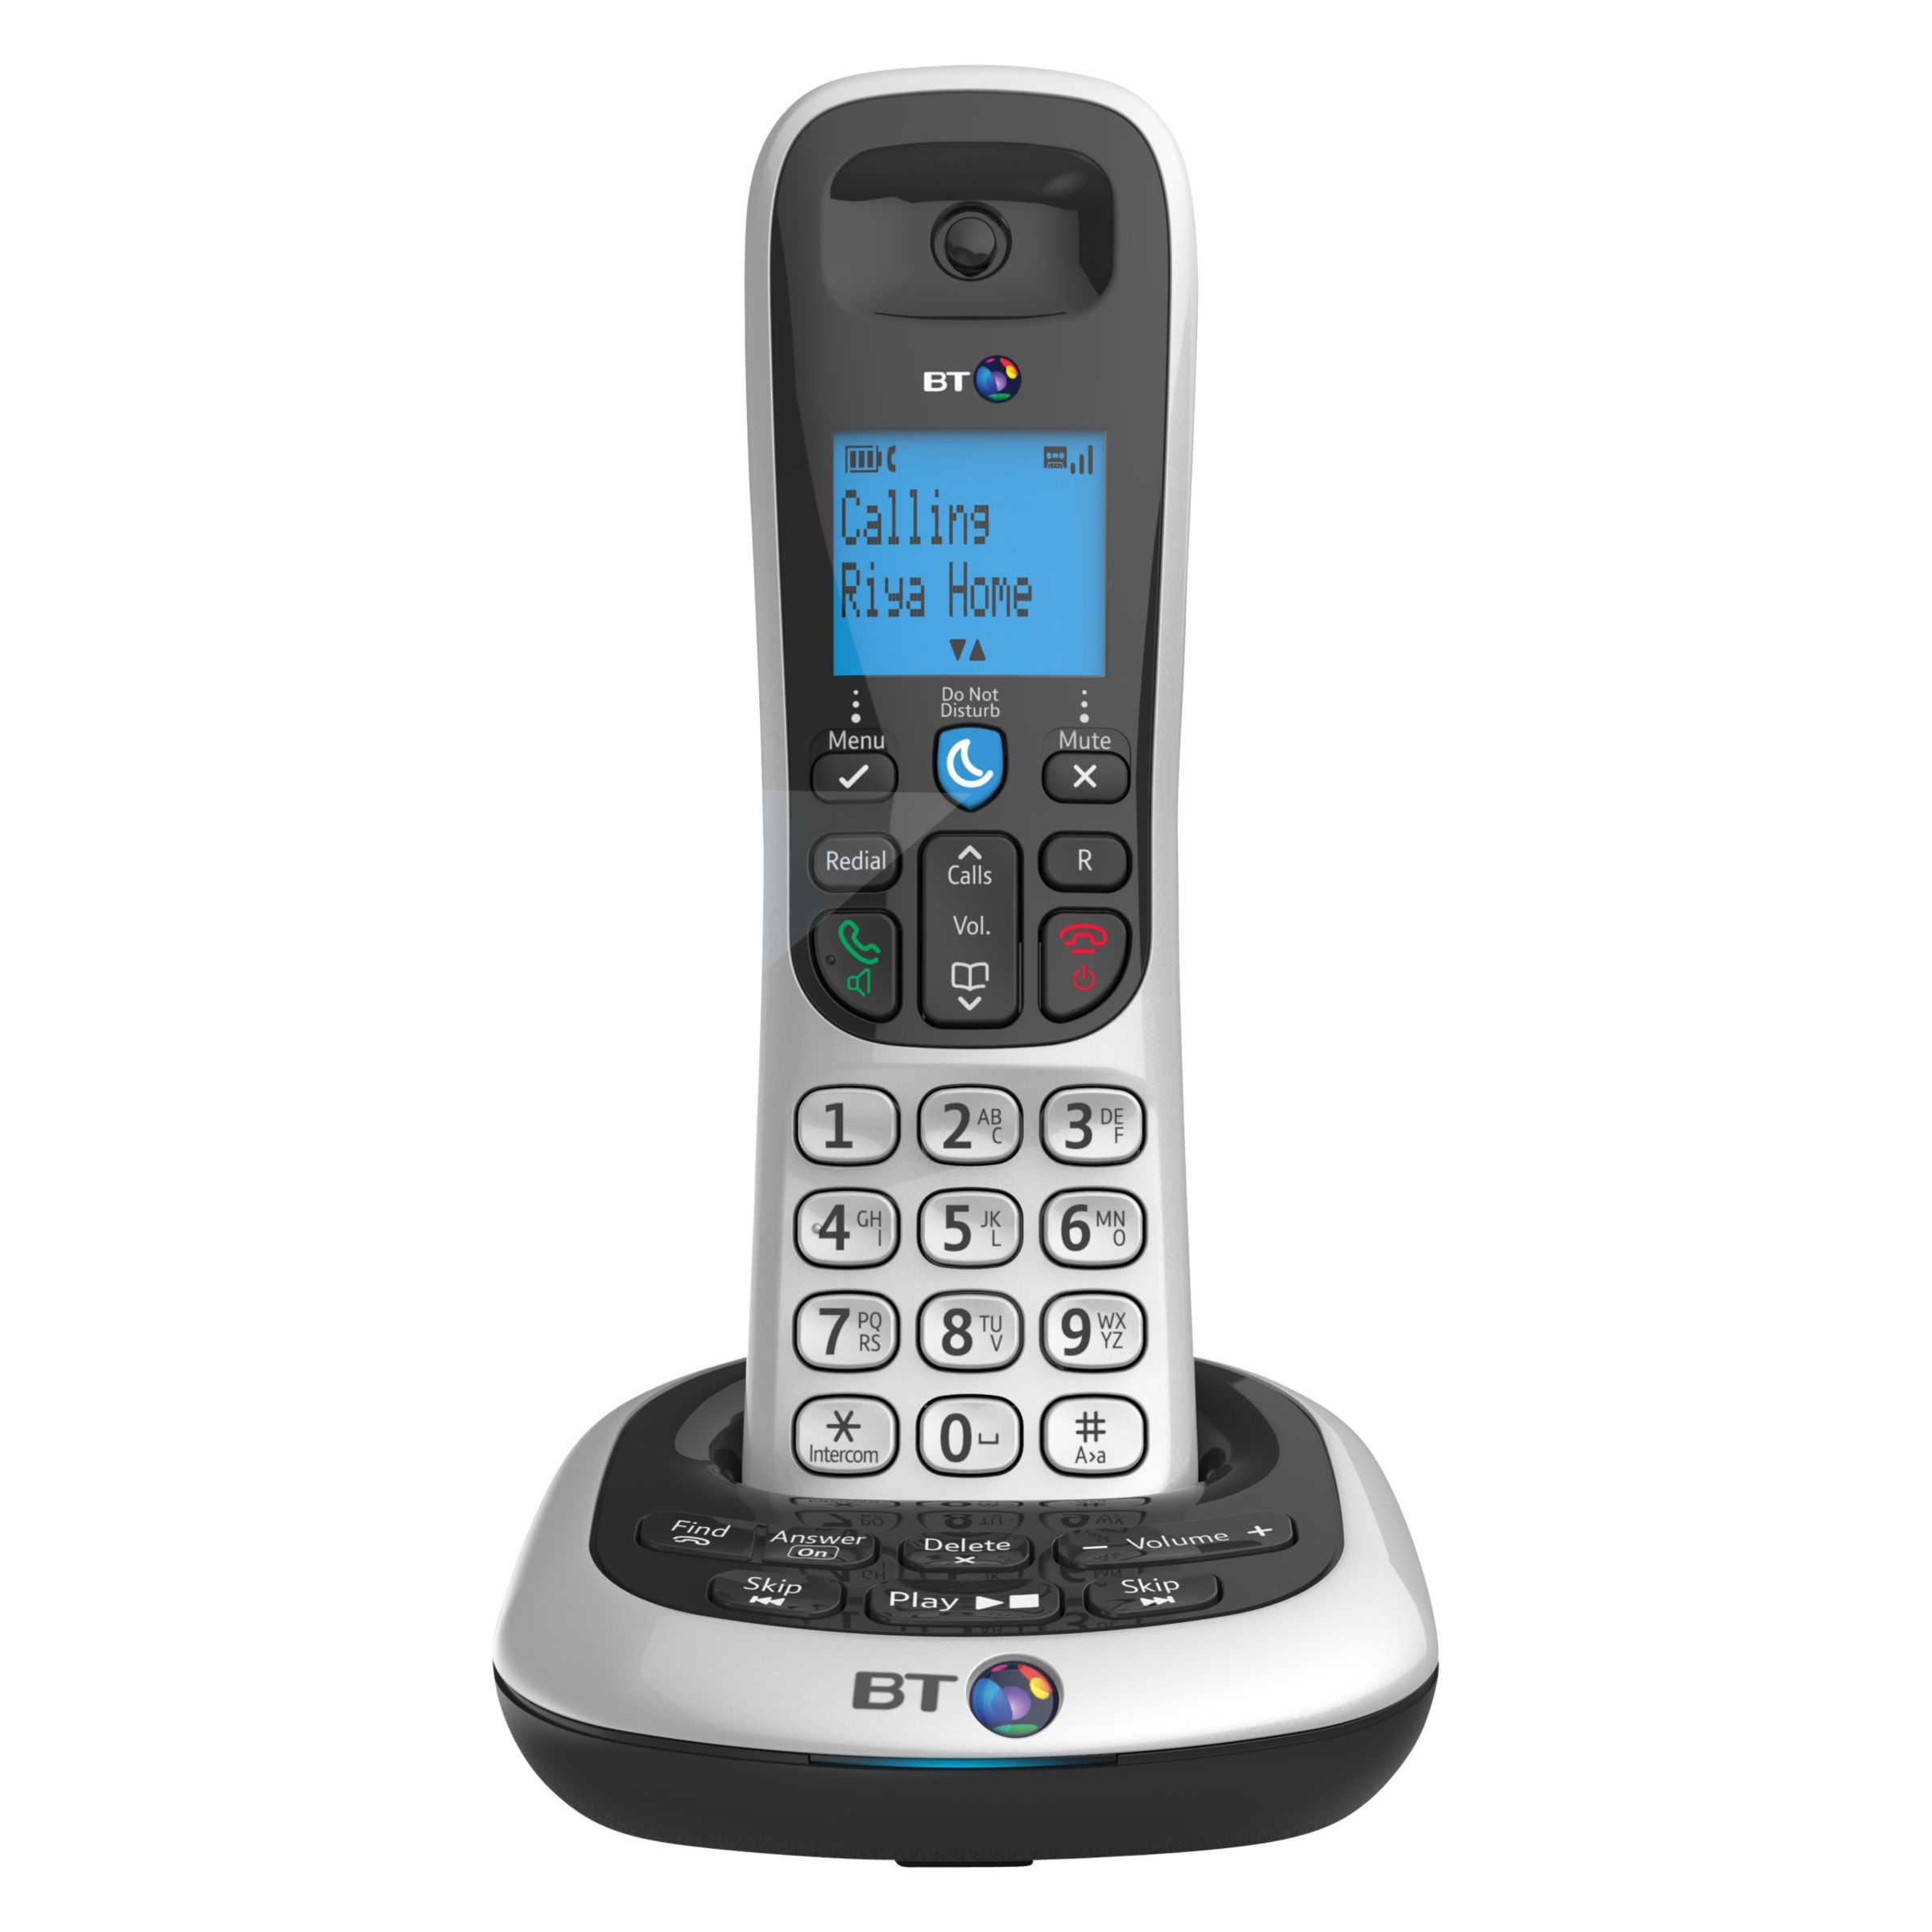 BT BT 2700 Digital Cordless Phone with Answering Machine, Single DECT